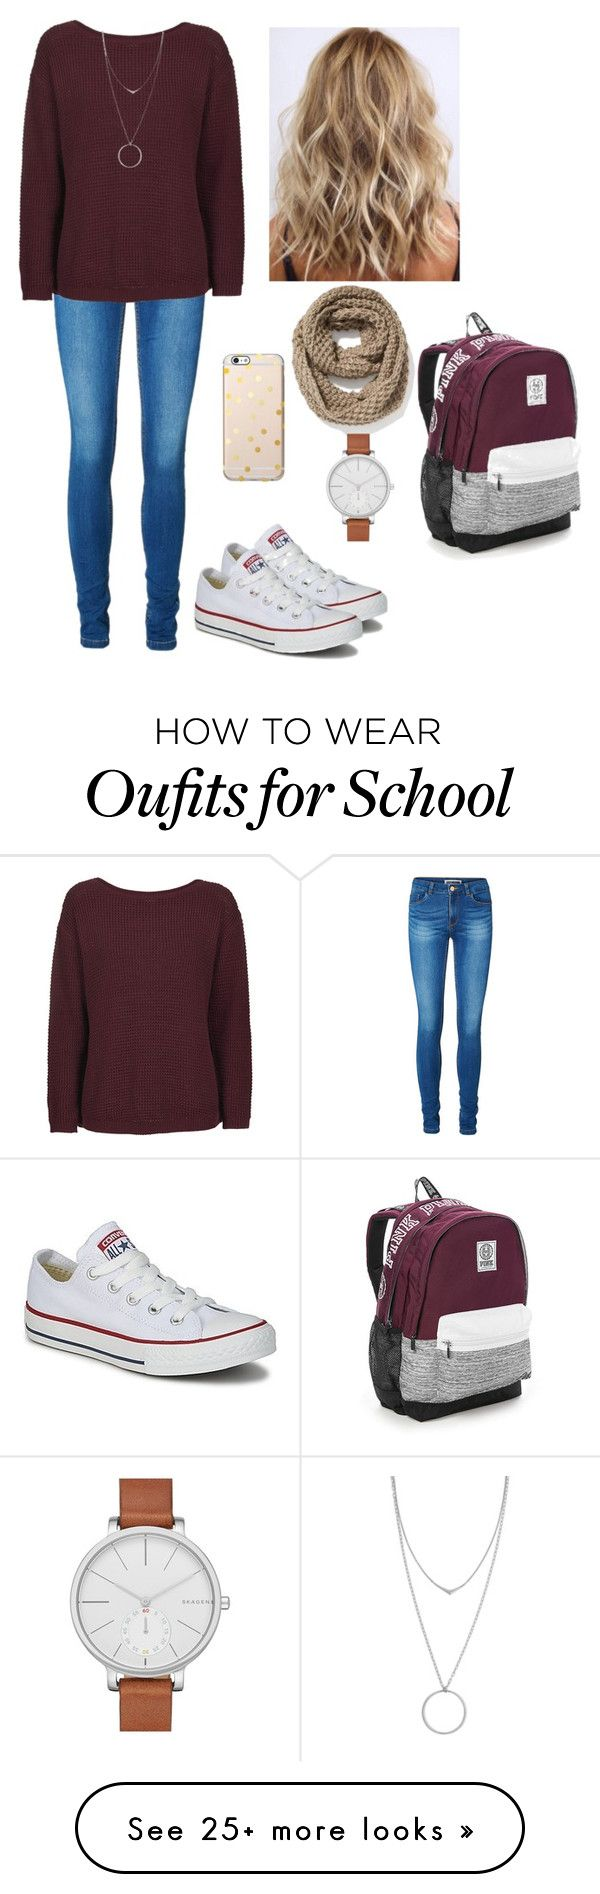 """Converse Chuck Taylor All Star - 15 #School"" by inlovewithtay on Polyvore featuring Converse, Vero Moda, The Ragged Priest, Botkier, Old Navy, Victoria's Secret, Skagen, converse and allstar"